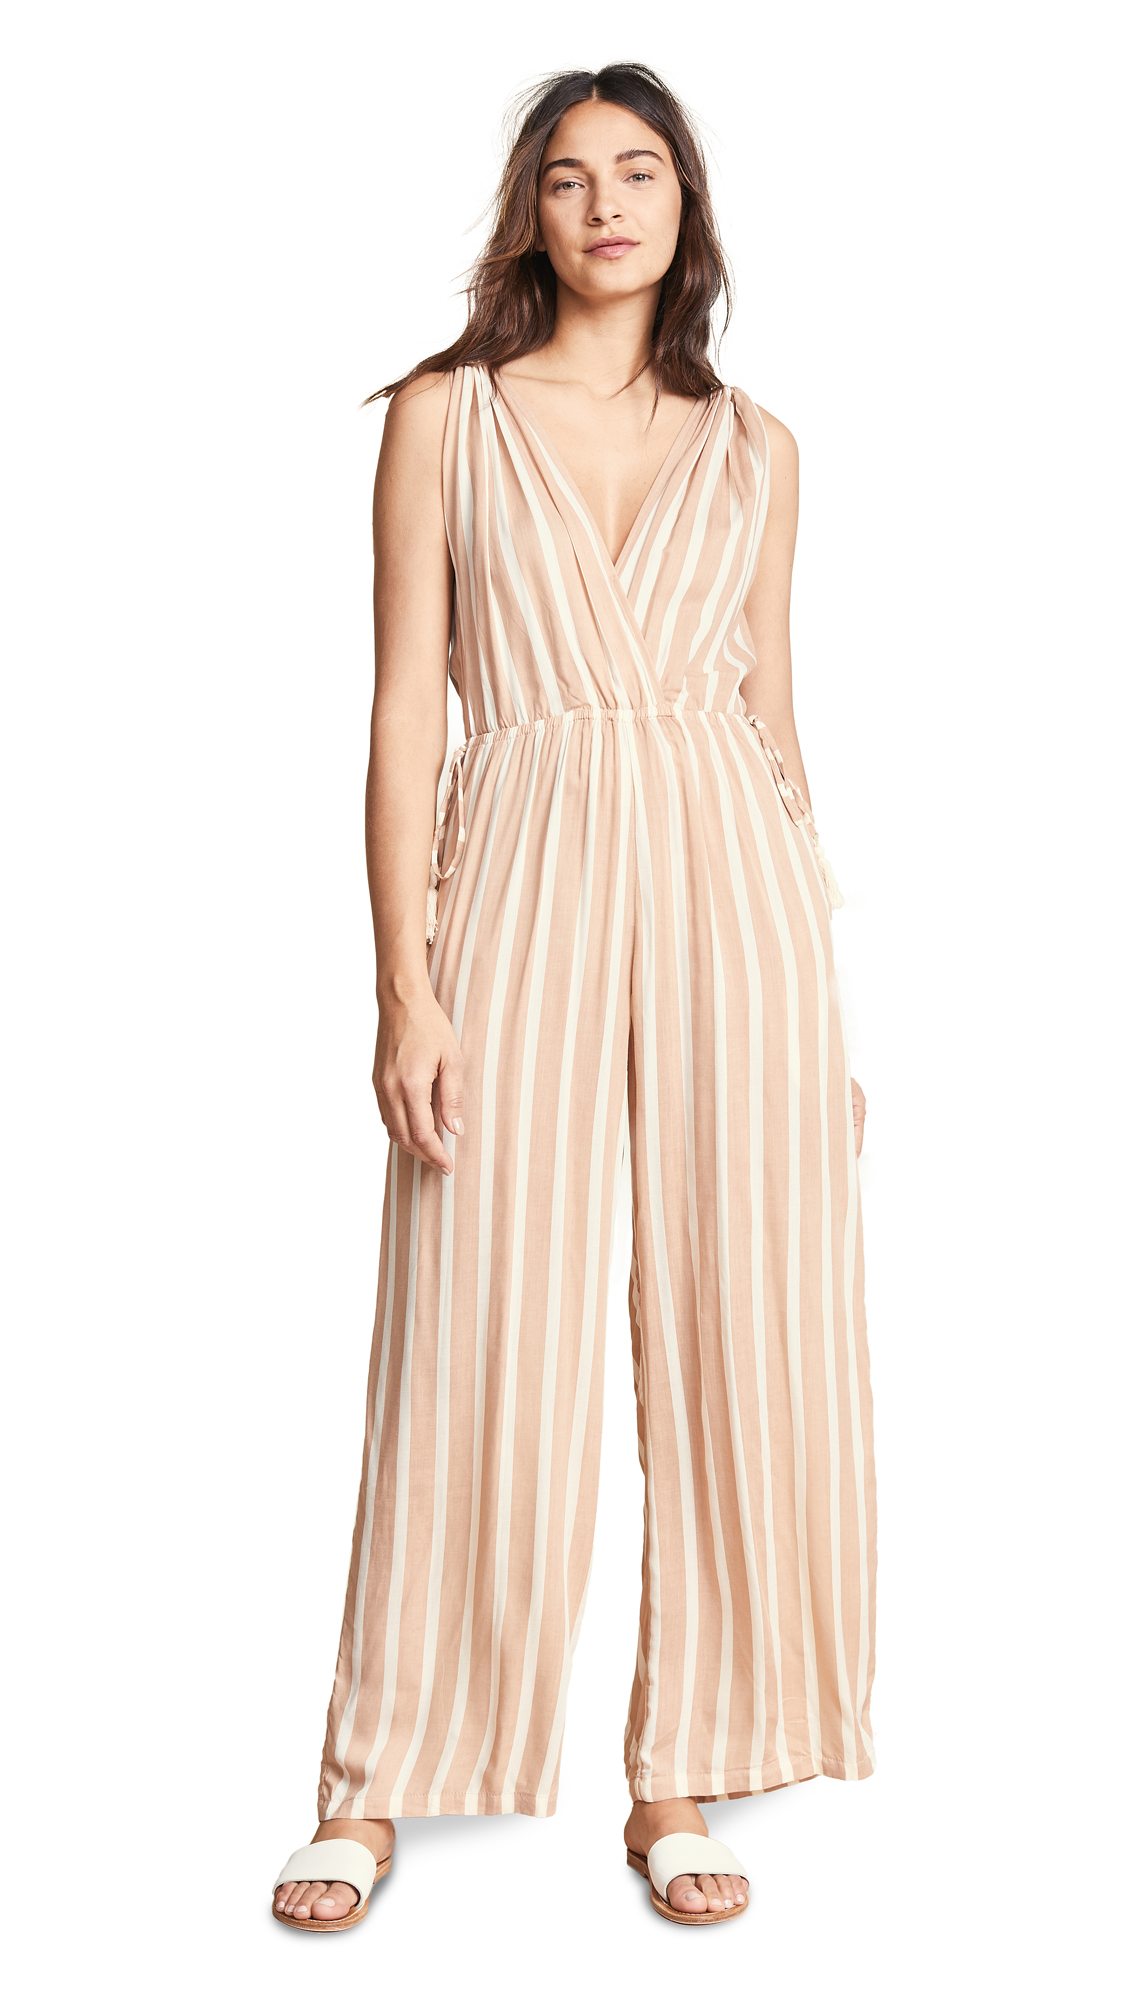 COOL CHANGE Taryn Toiny Stripe Jumpsuit in Cafe